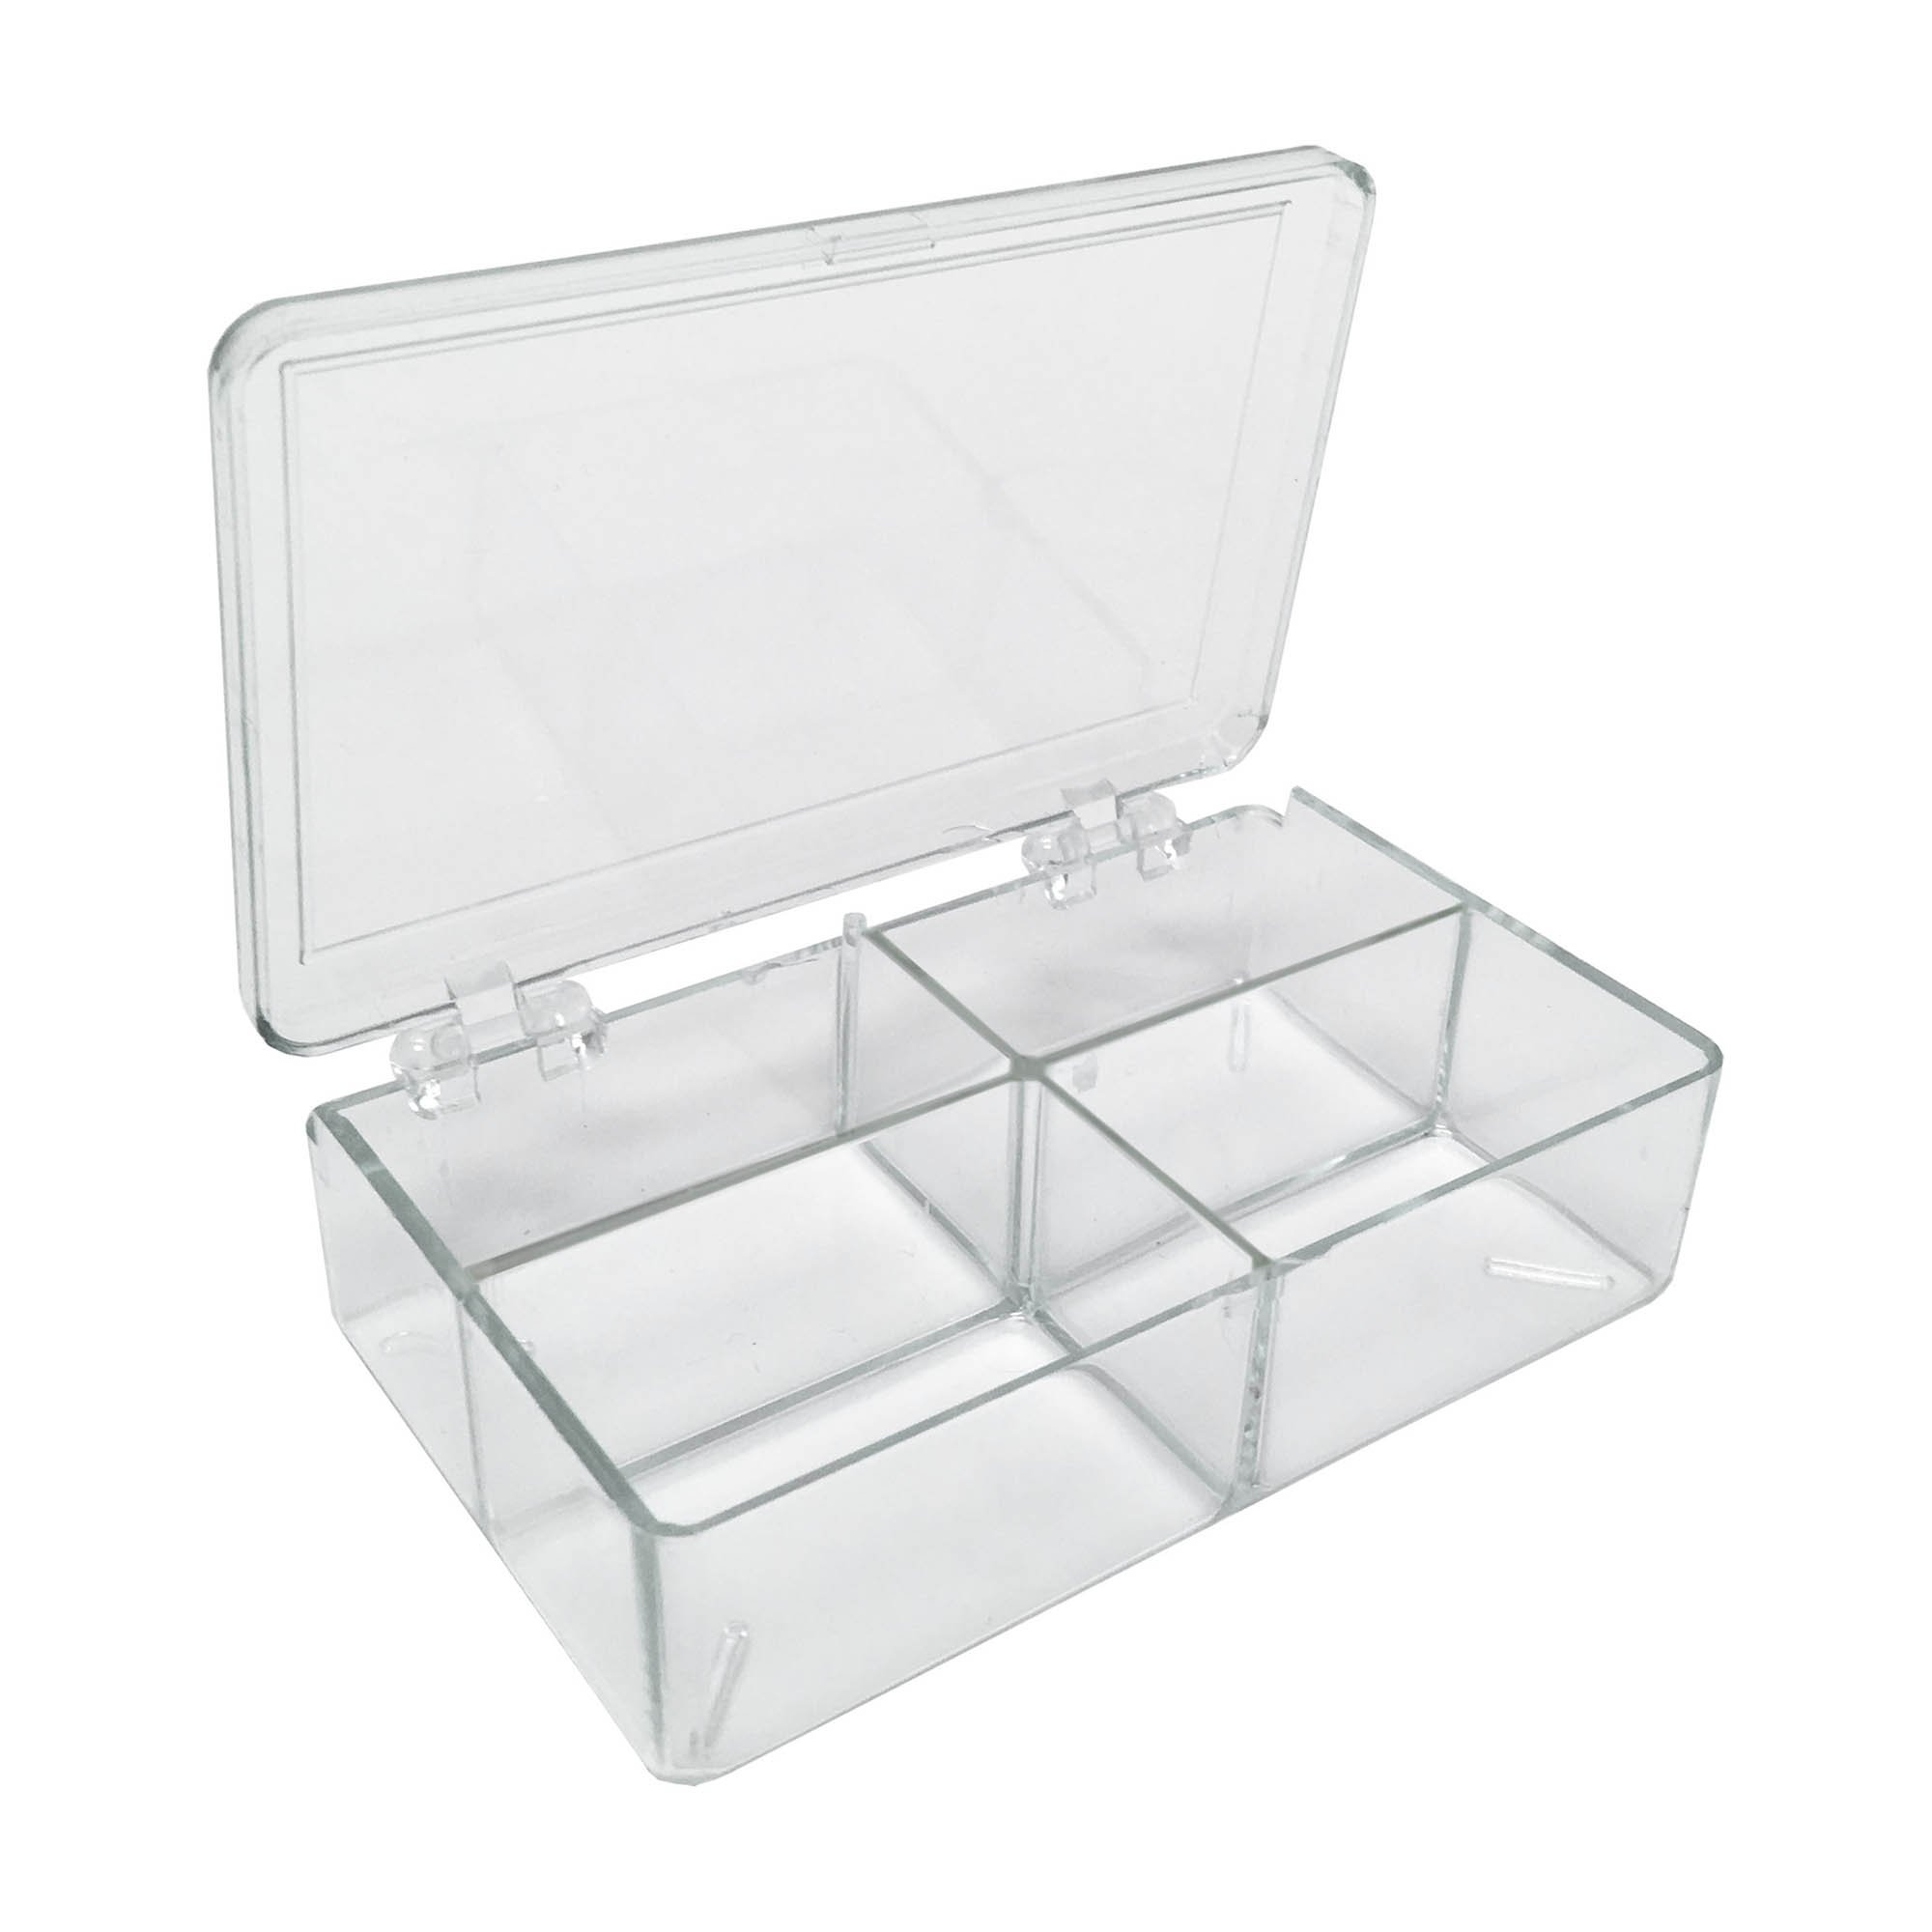 MultiBox Clear Western Blot Box - 4 Compartments 32 x 53 x 28mm Each (Case of 36)